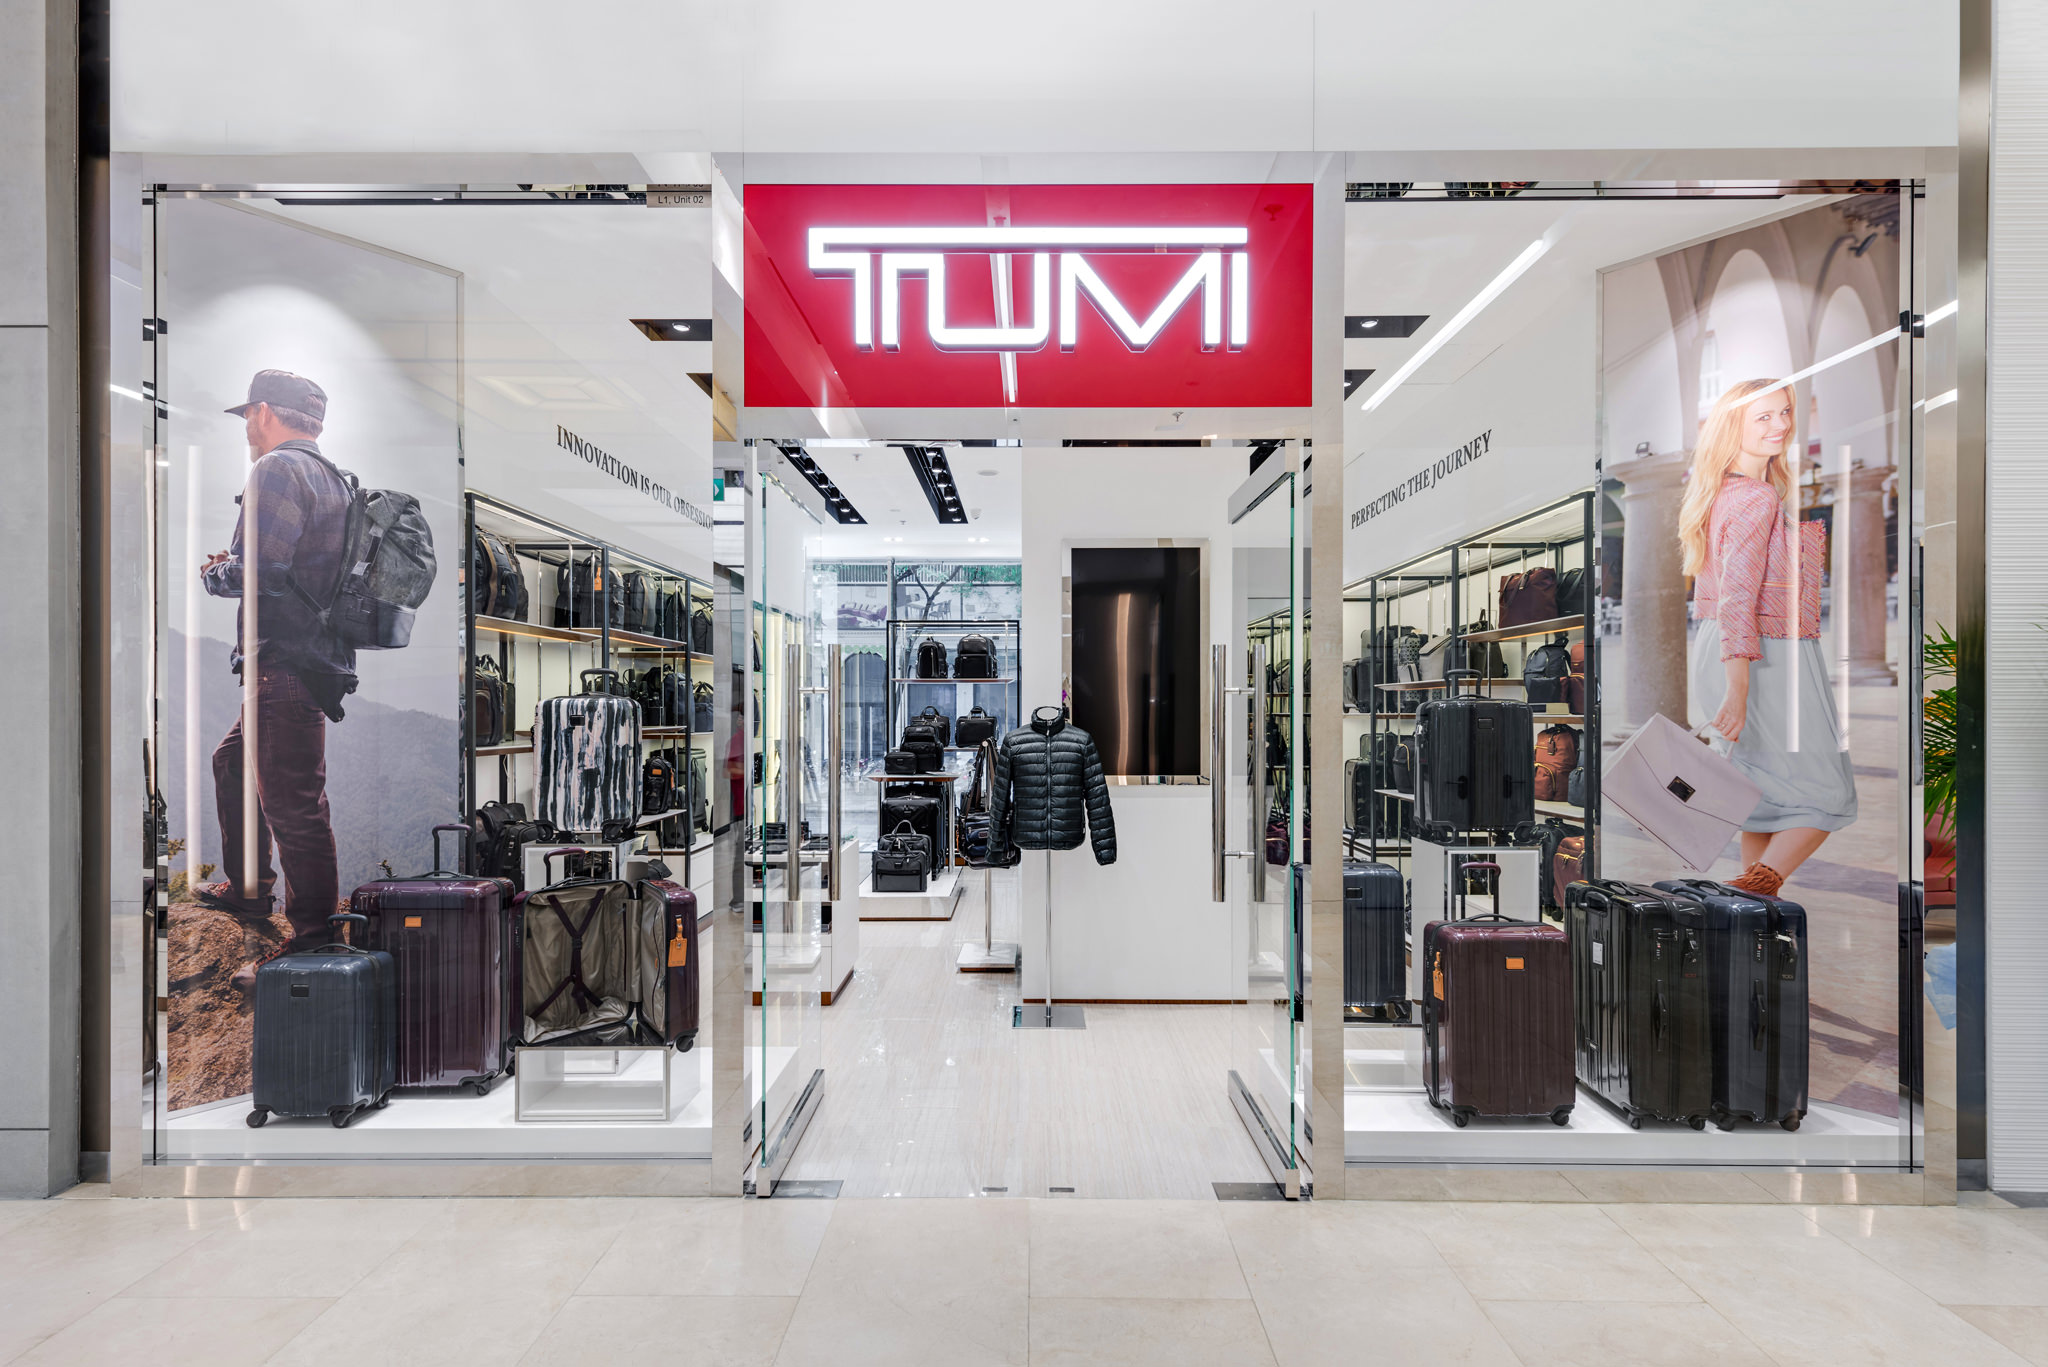 20160801 - Tumi - HCM - Commercial - Interior - Store - Retouch 0001.jpg